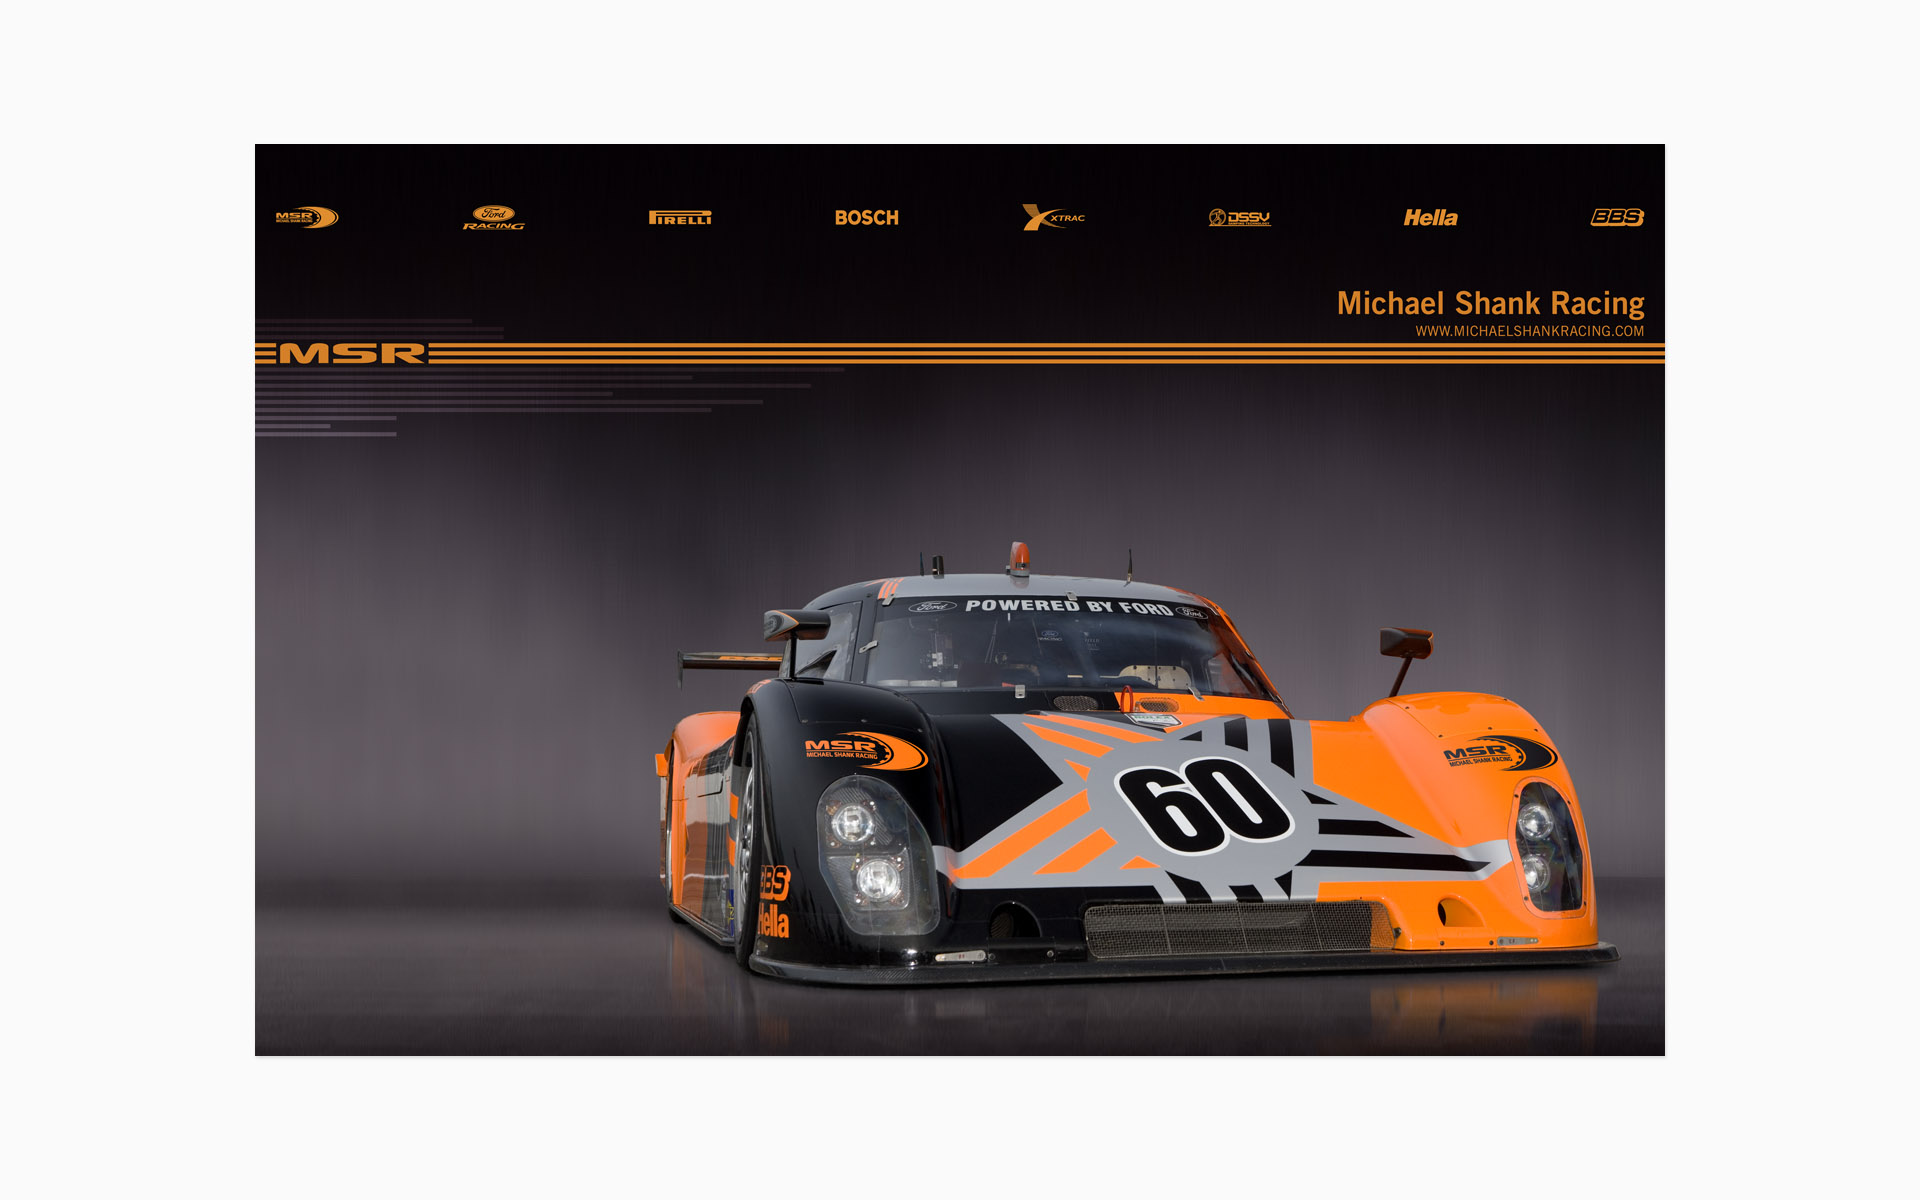 2006 Michael Shank Racing Poster